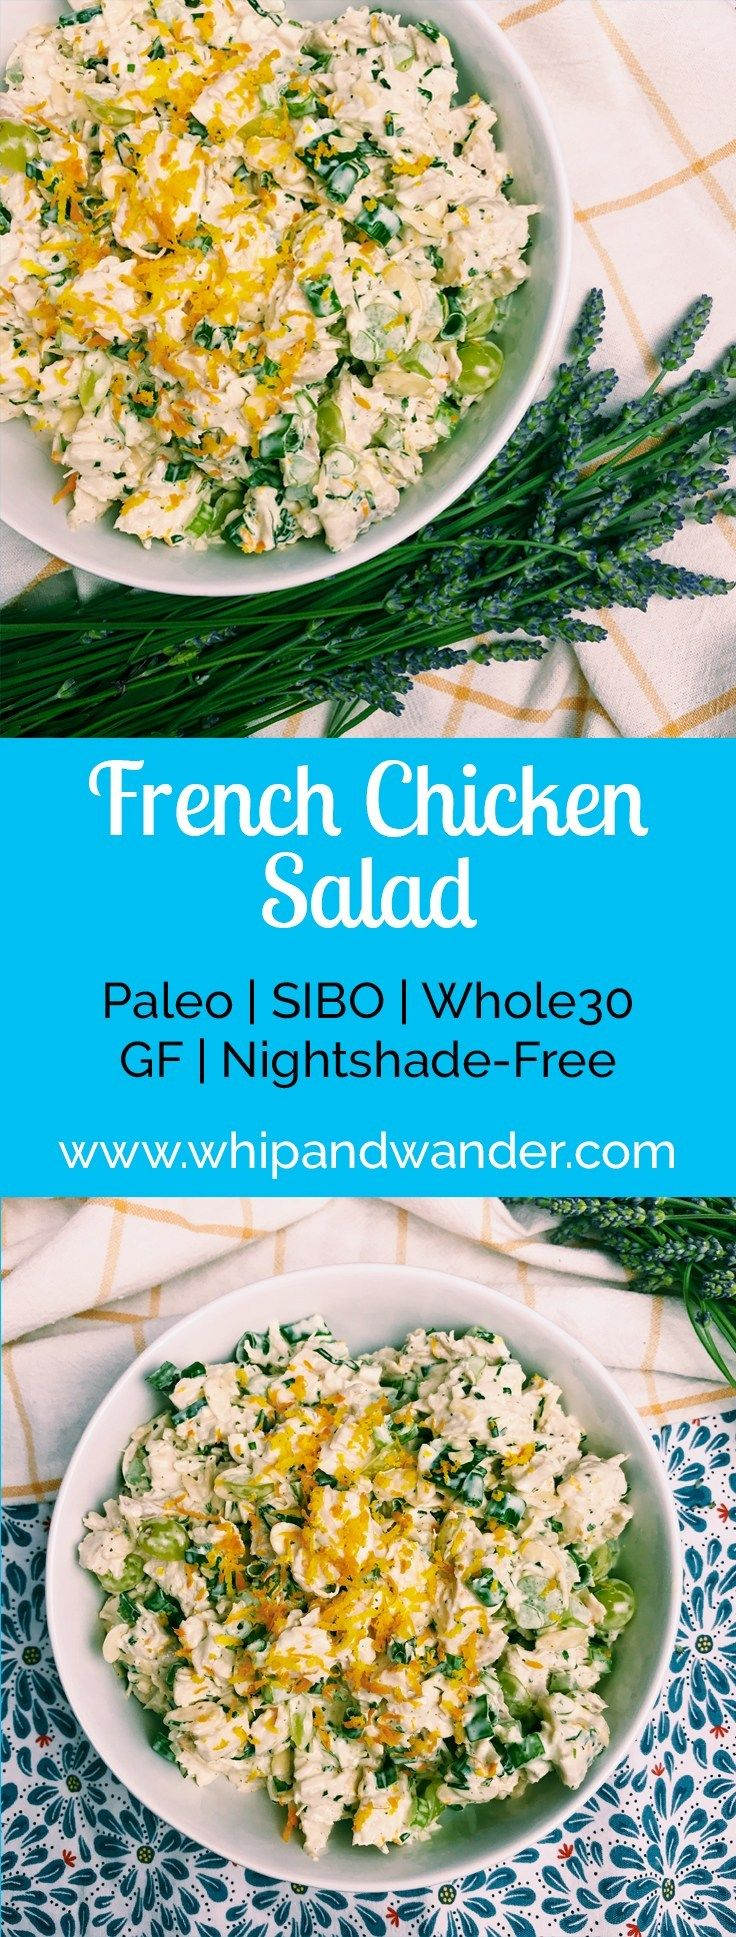 Photo of Ensalada de pollo francesa